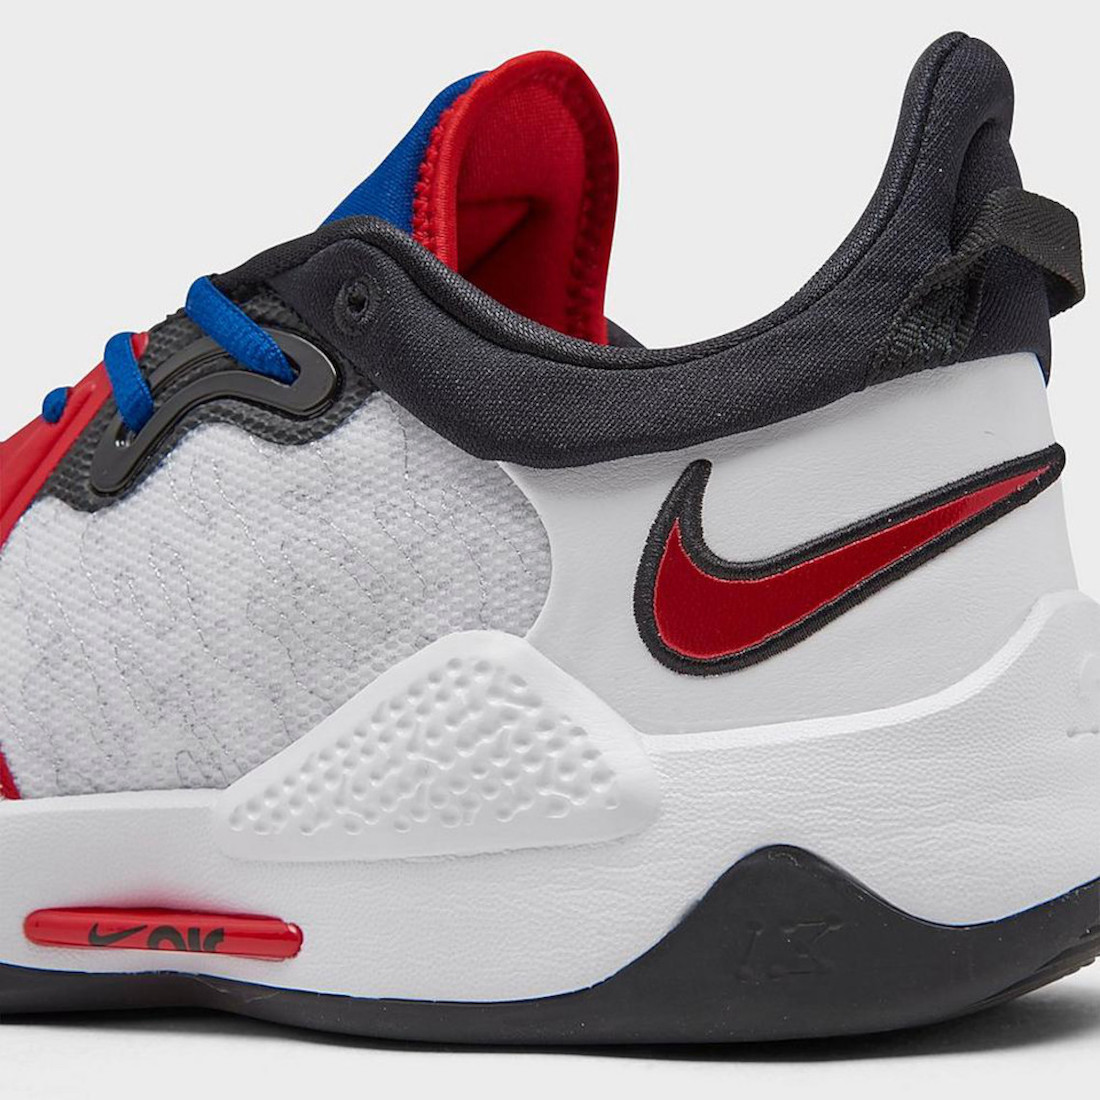 Nike PG 5 Clippers CW3143-101 Release Date Info